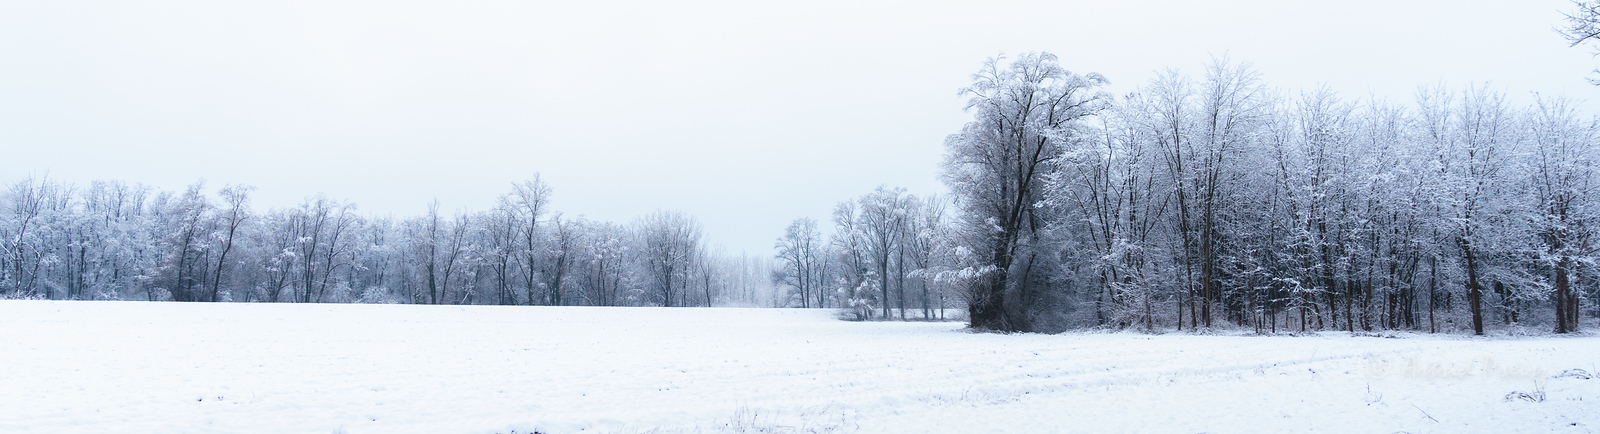 Winter Snow-0094-X3